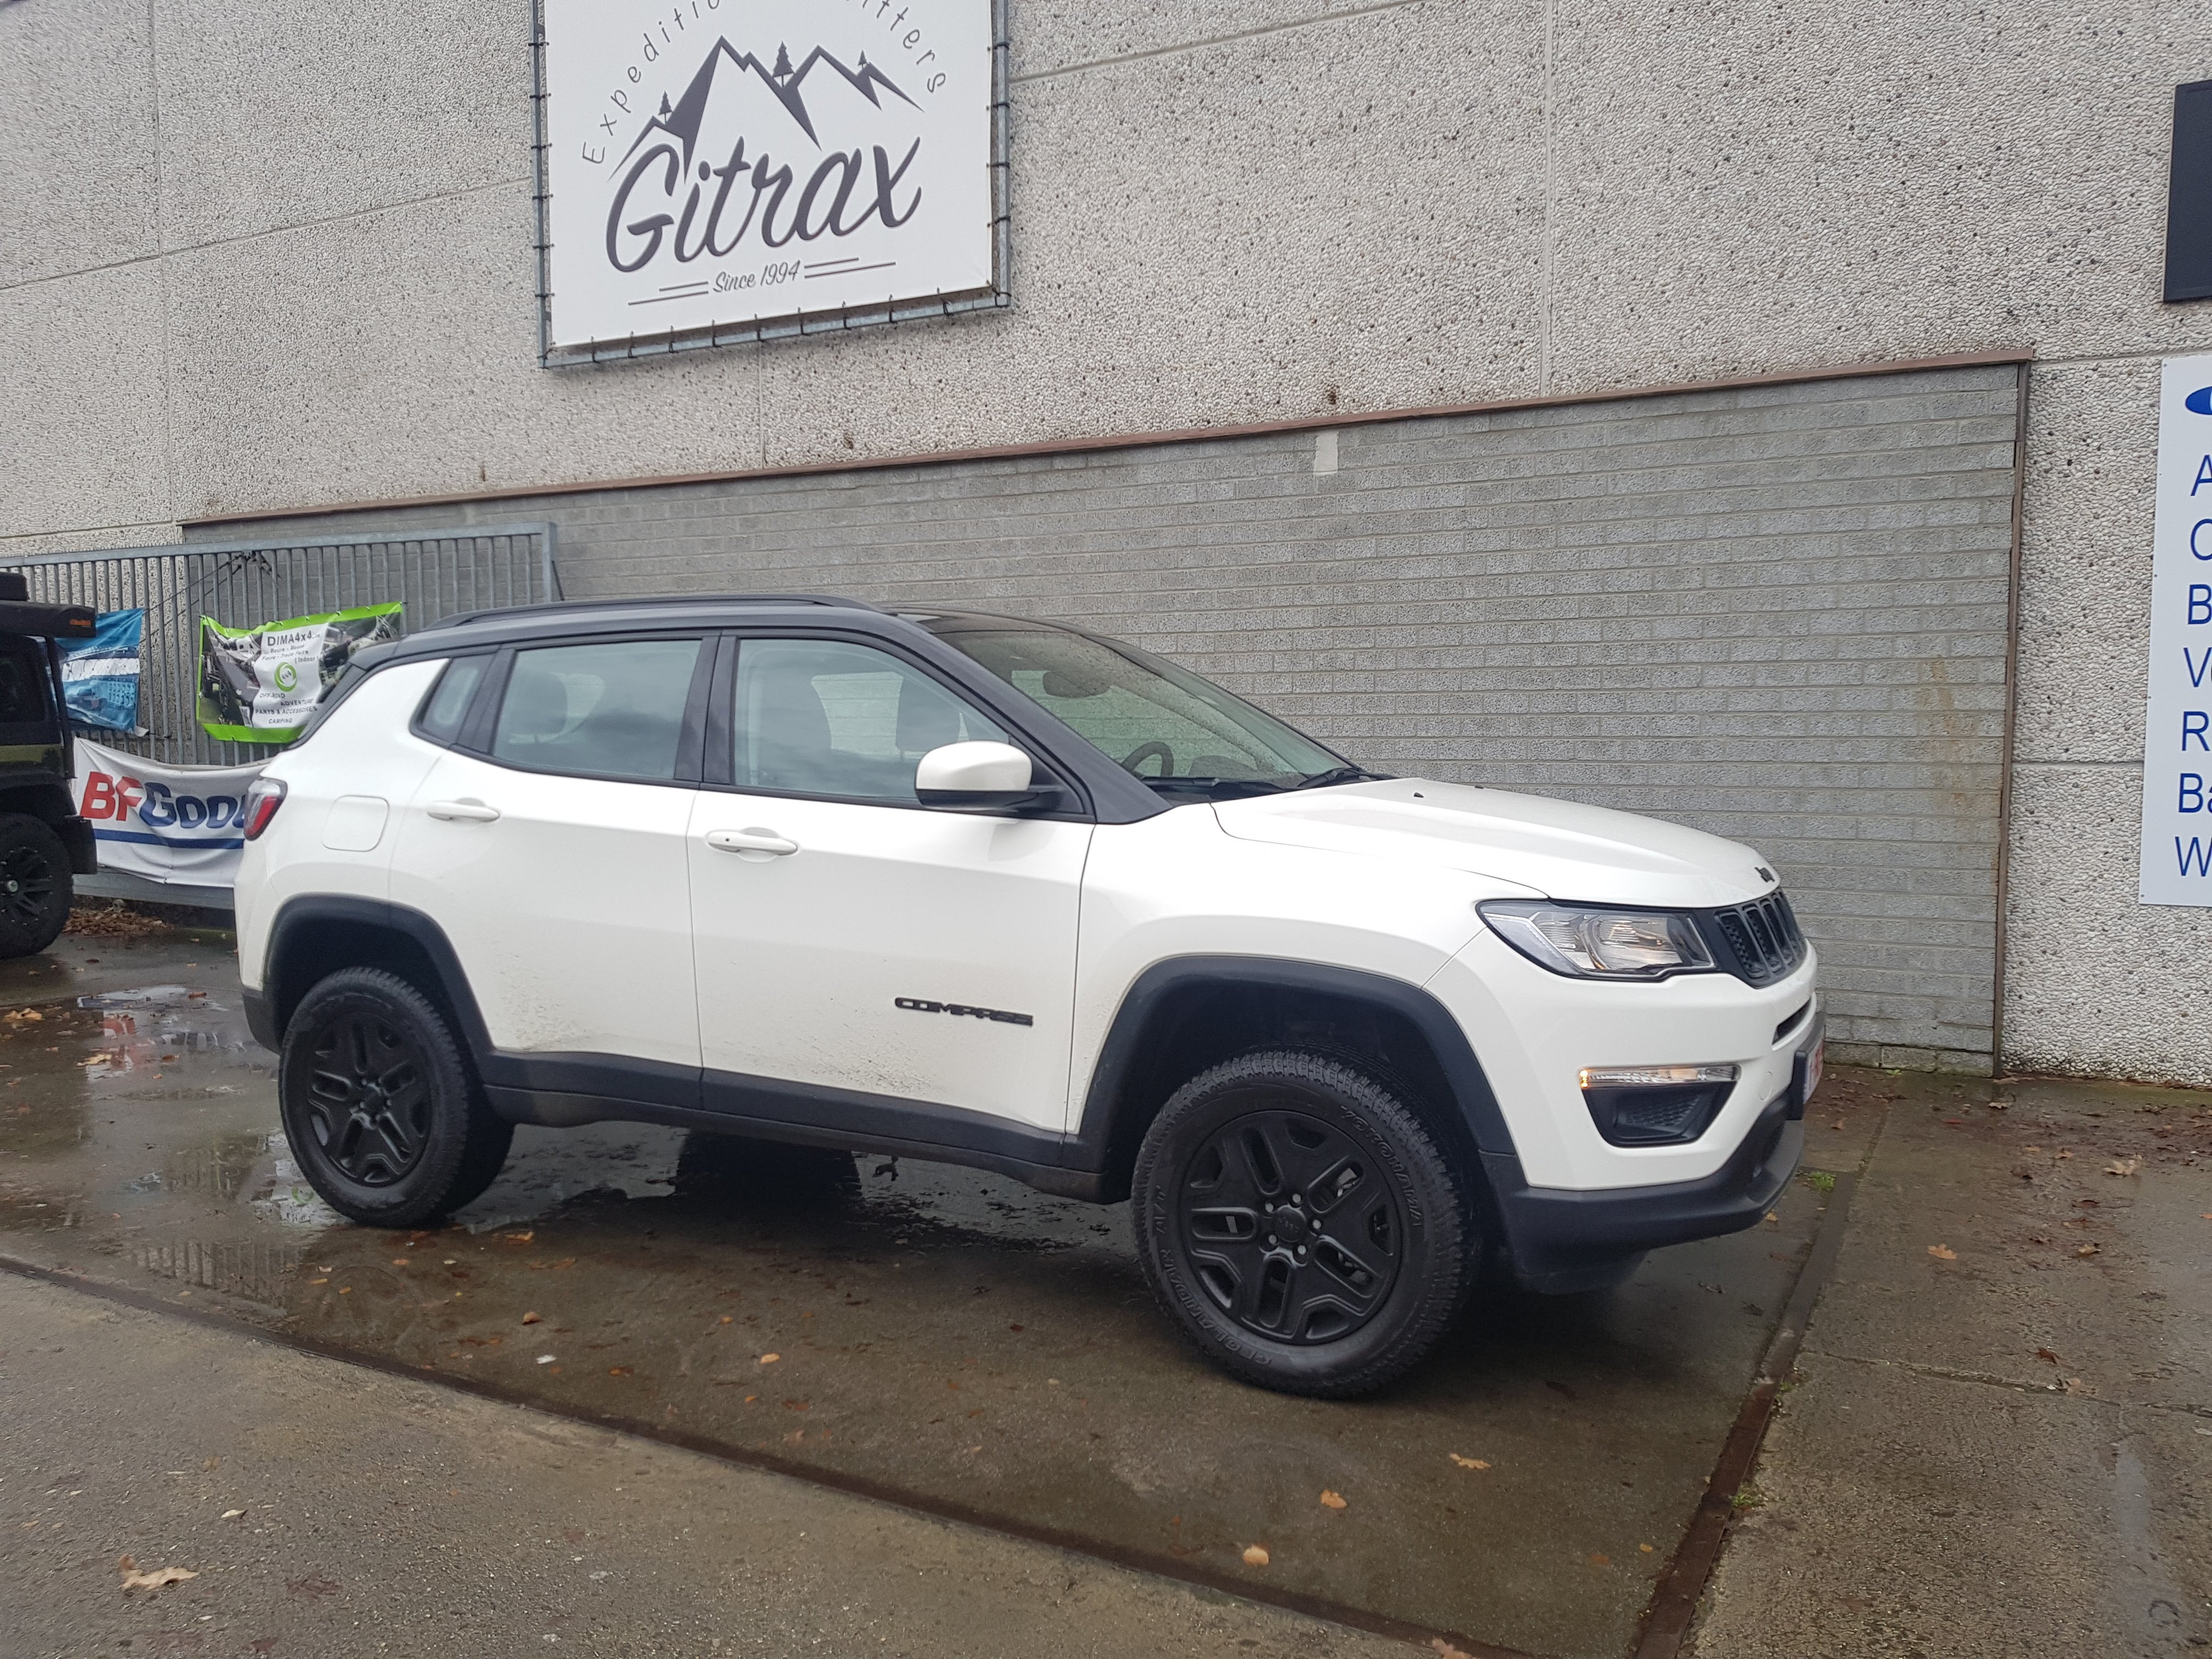 Jeep Compass Gitrax